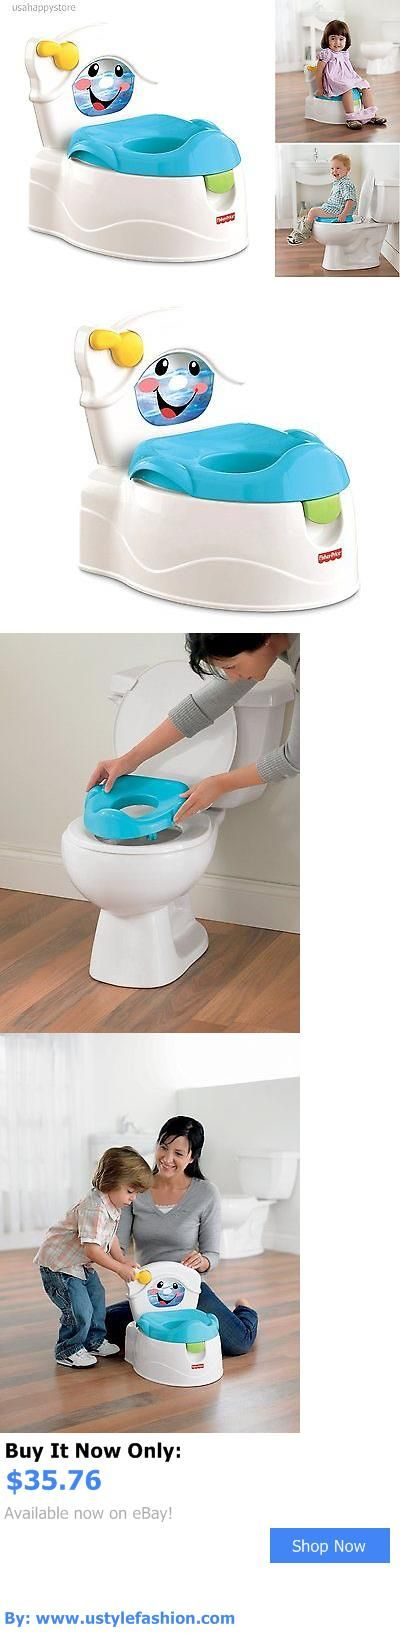 Potty Training: Fisher Price Potty Training Chair Kids Toddler Toilet Seat Pretend Bathroom Baby BUY IT NOW ONLY: $35.76 #ustylefashionPottyTraining OR #ustylefashion